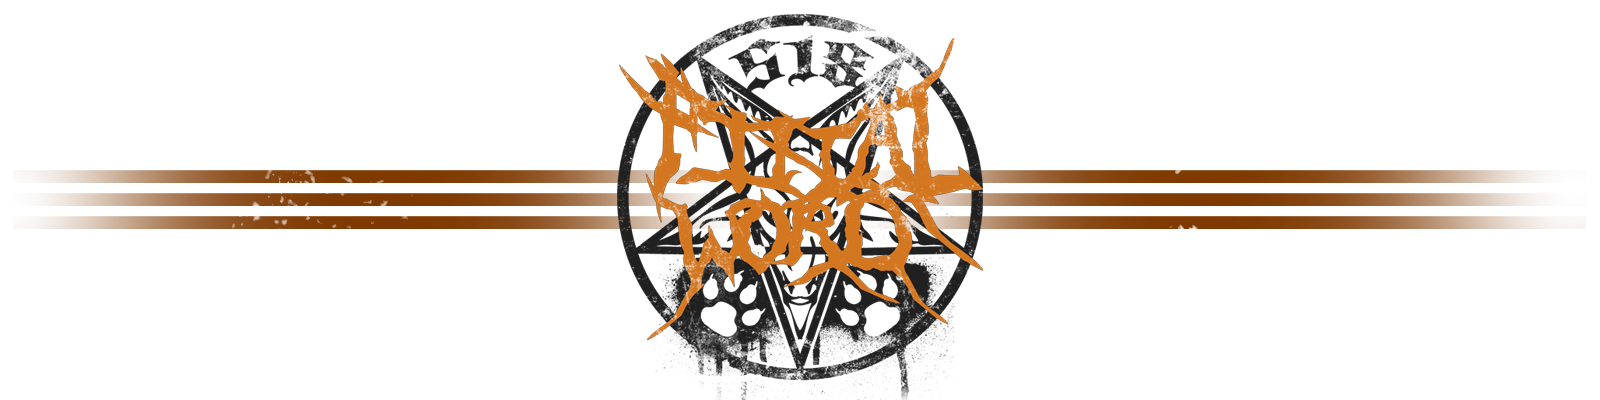 Final Word Records